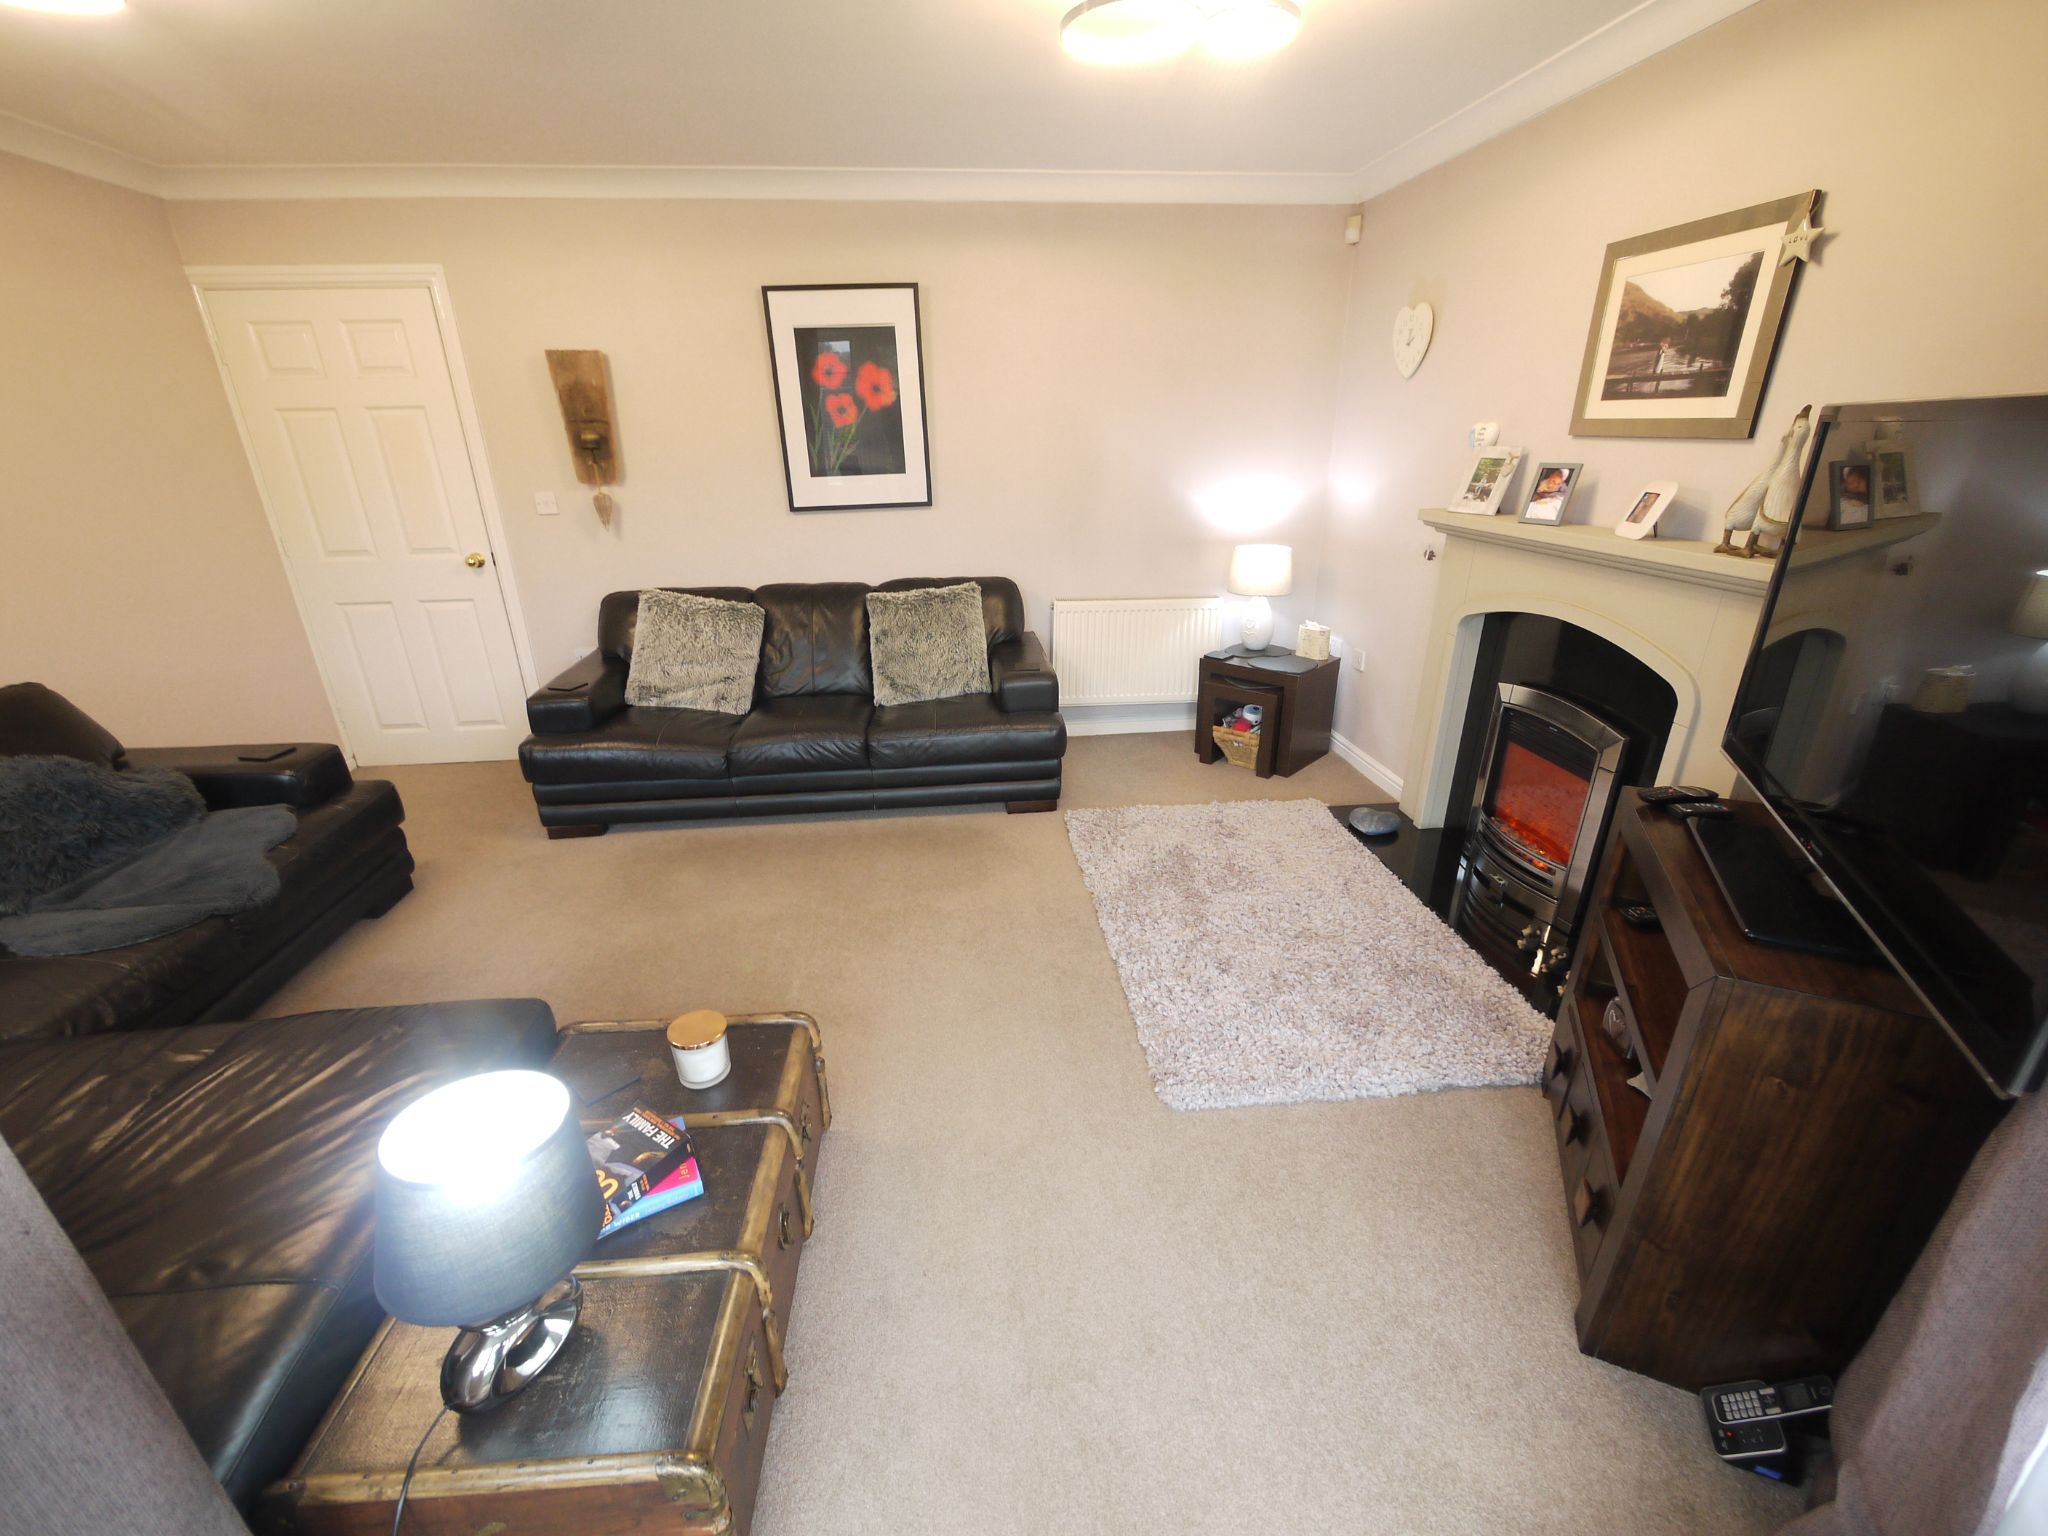 4 bedroom detached house SSTC in Brighouse - Lounge 2.